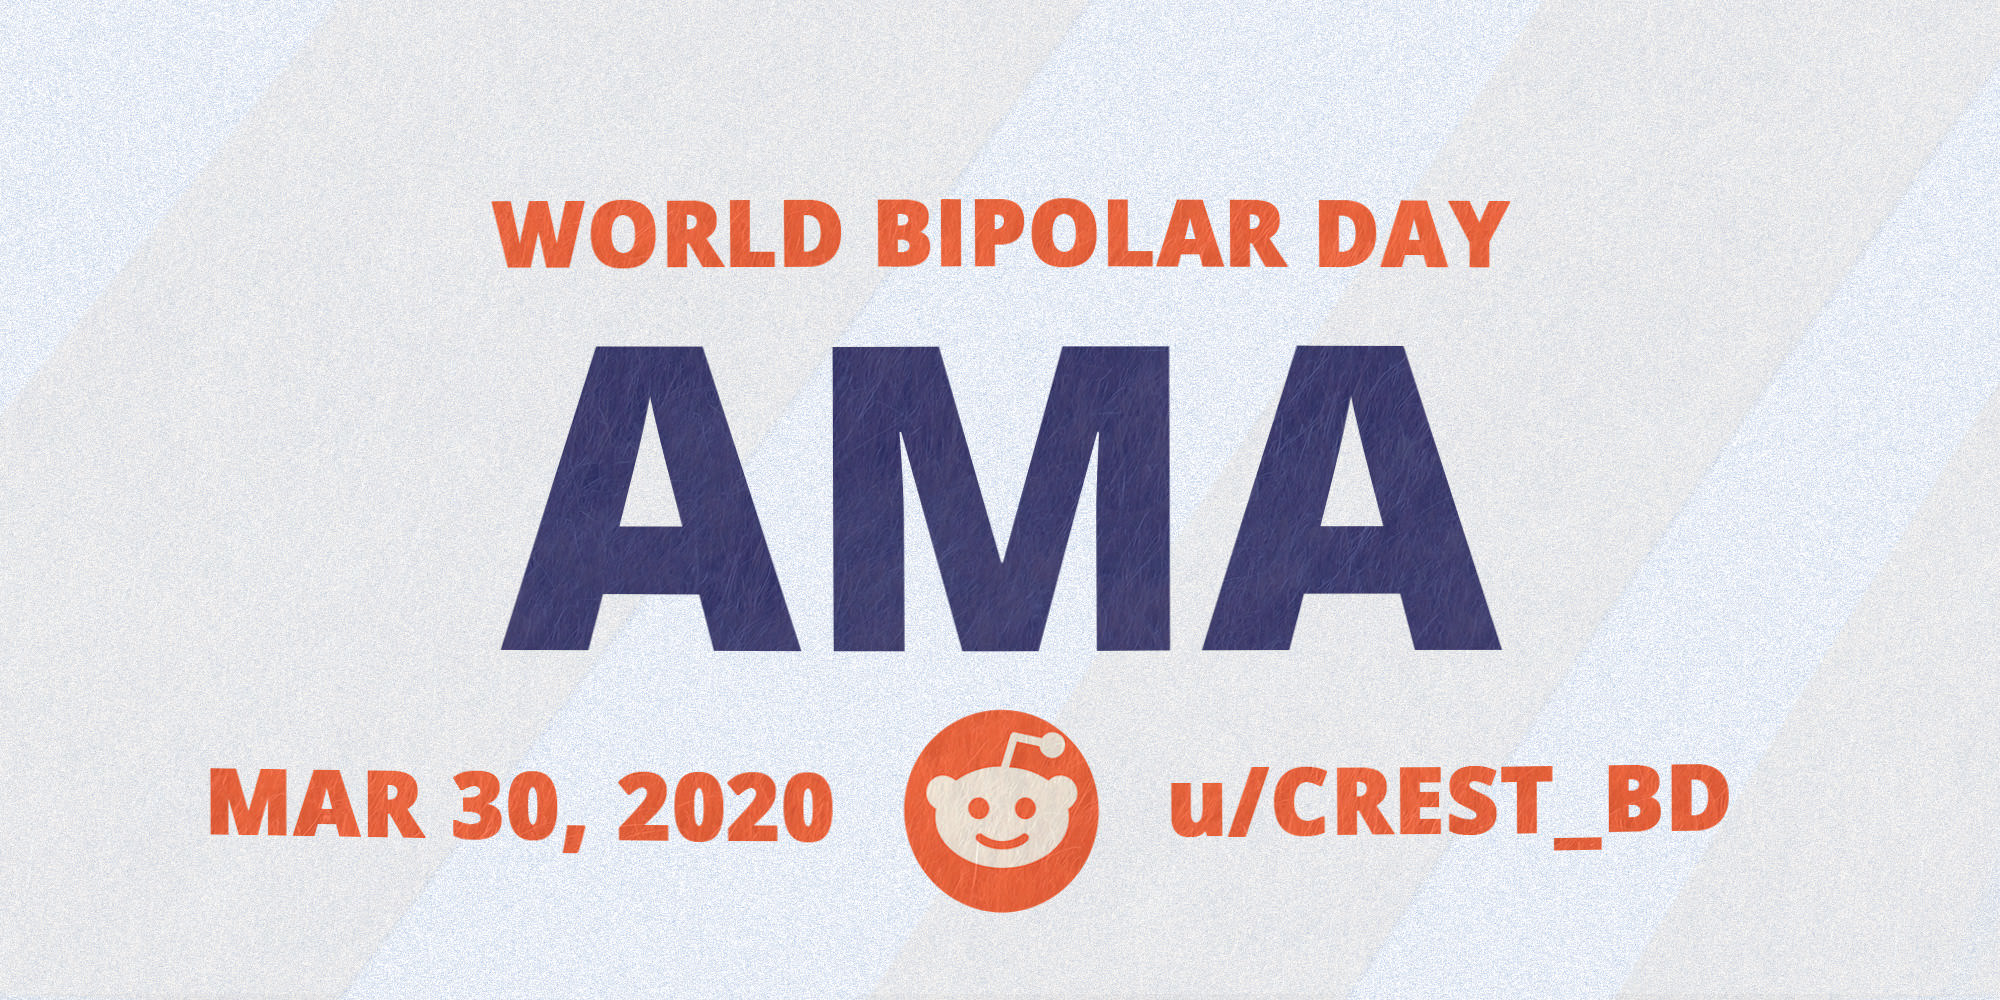 Reddit AMA: Ask us anything on World Bipolar Day!